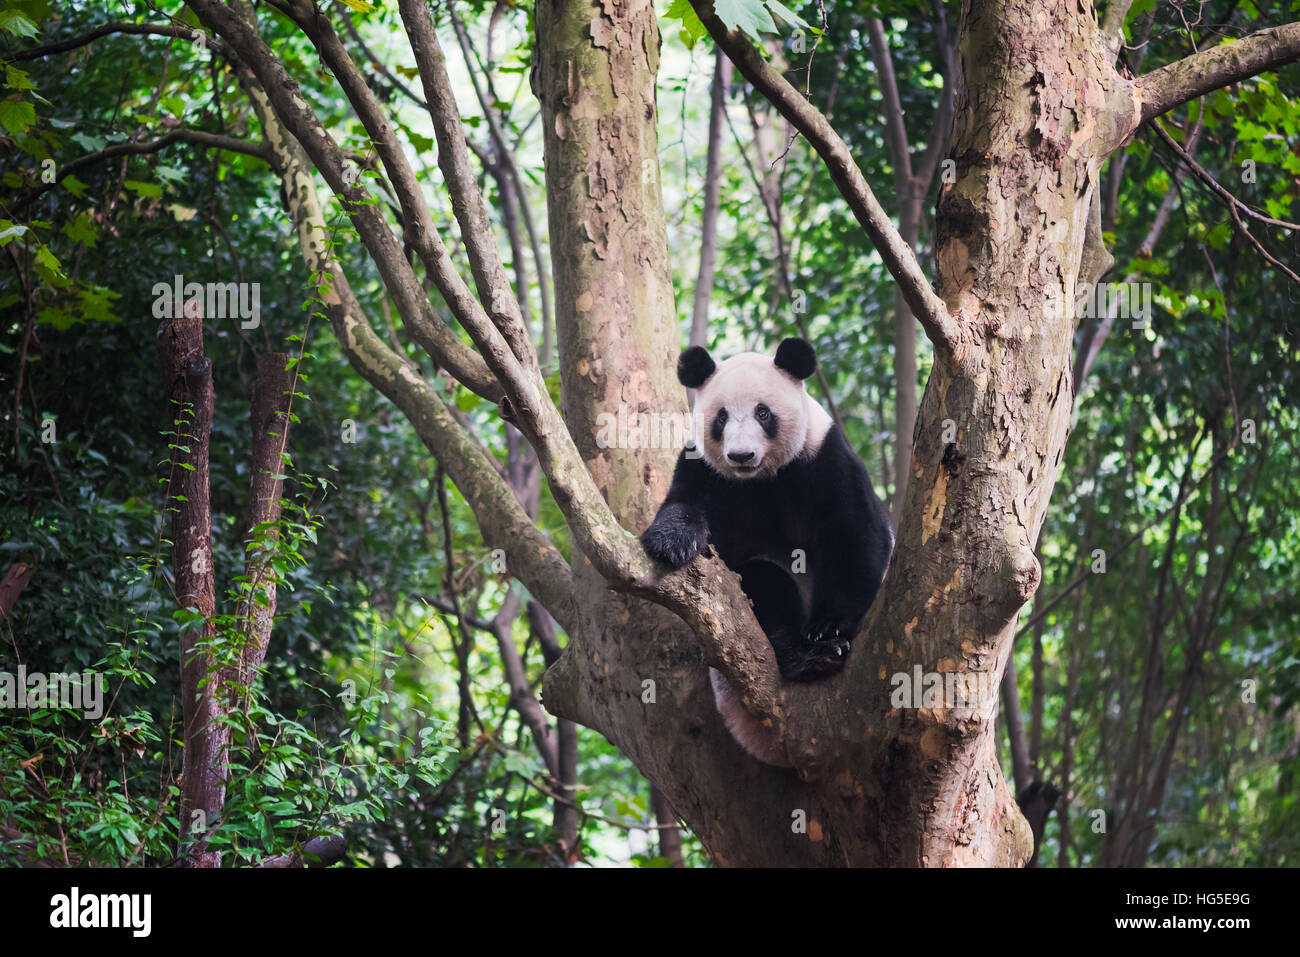 Giant Panda sitting in a tree and looking at camera -  Chengdu, Sichuan Province, Chengdu - Stock Image